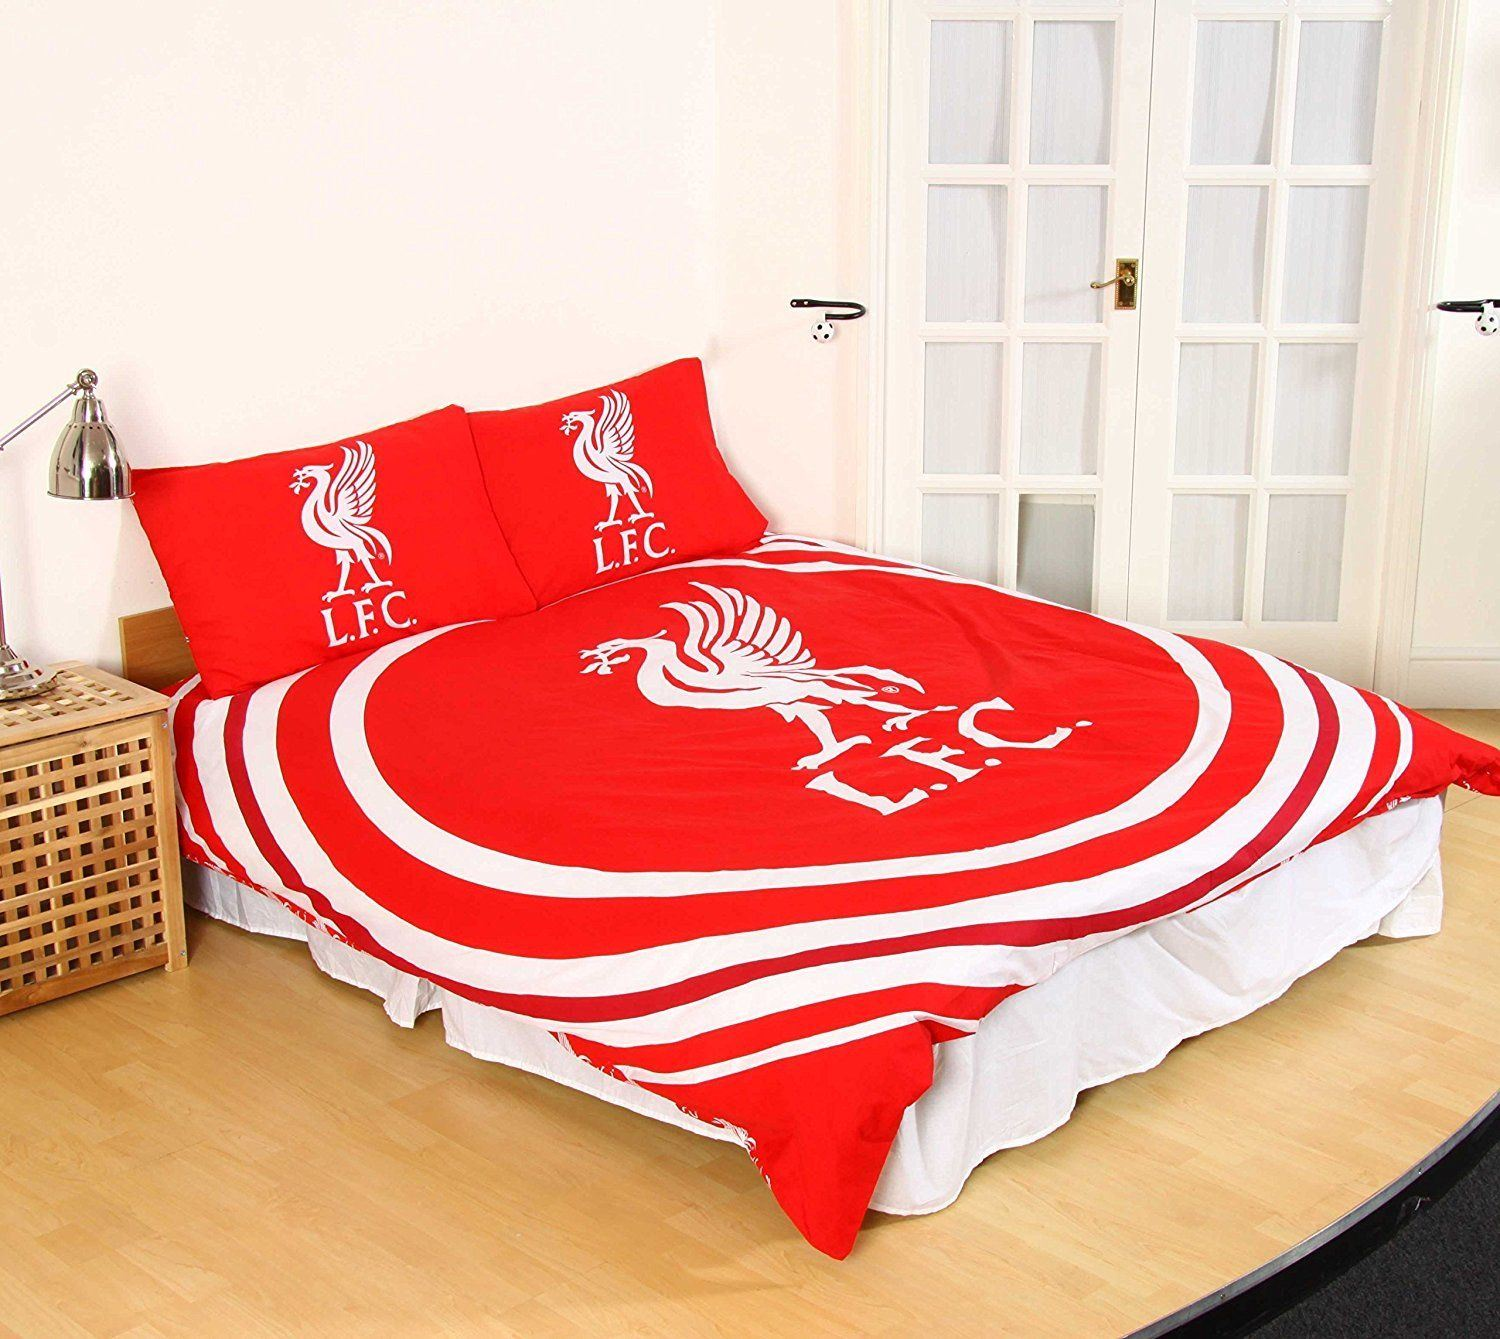 official liverpool fc football duvet bedding quilt kop bed set single reversible ebay. Black Bedroom Furniture Sets. Home Design Ideas